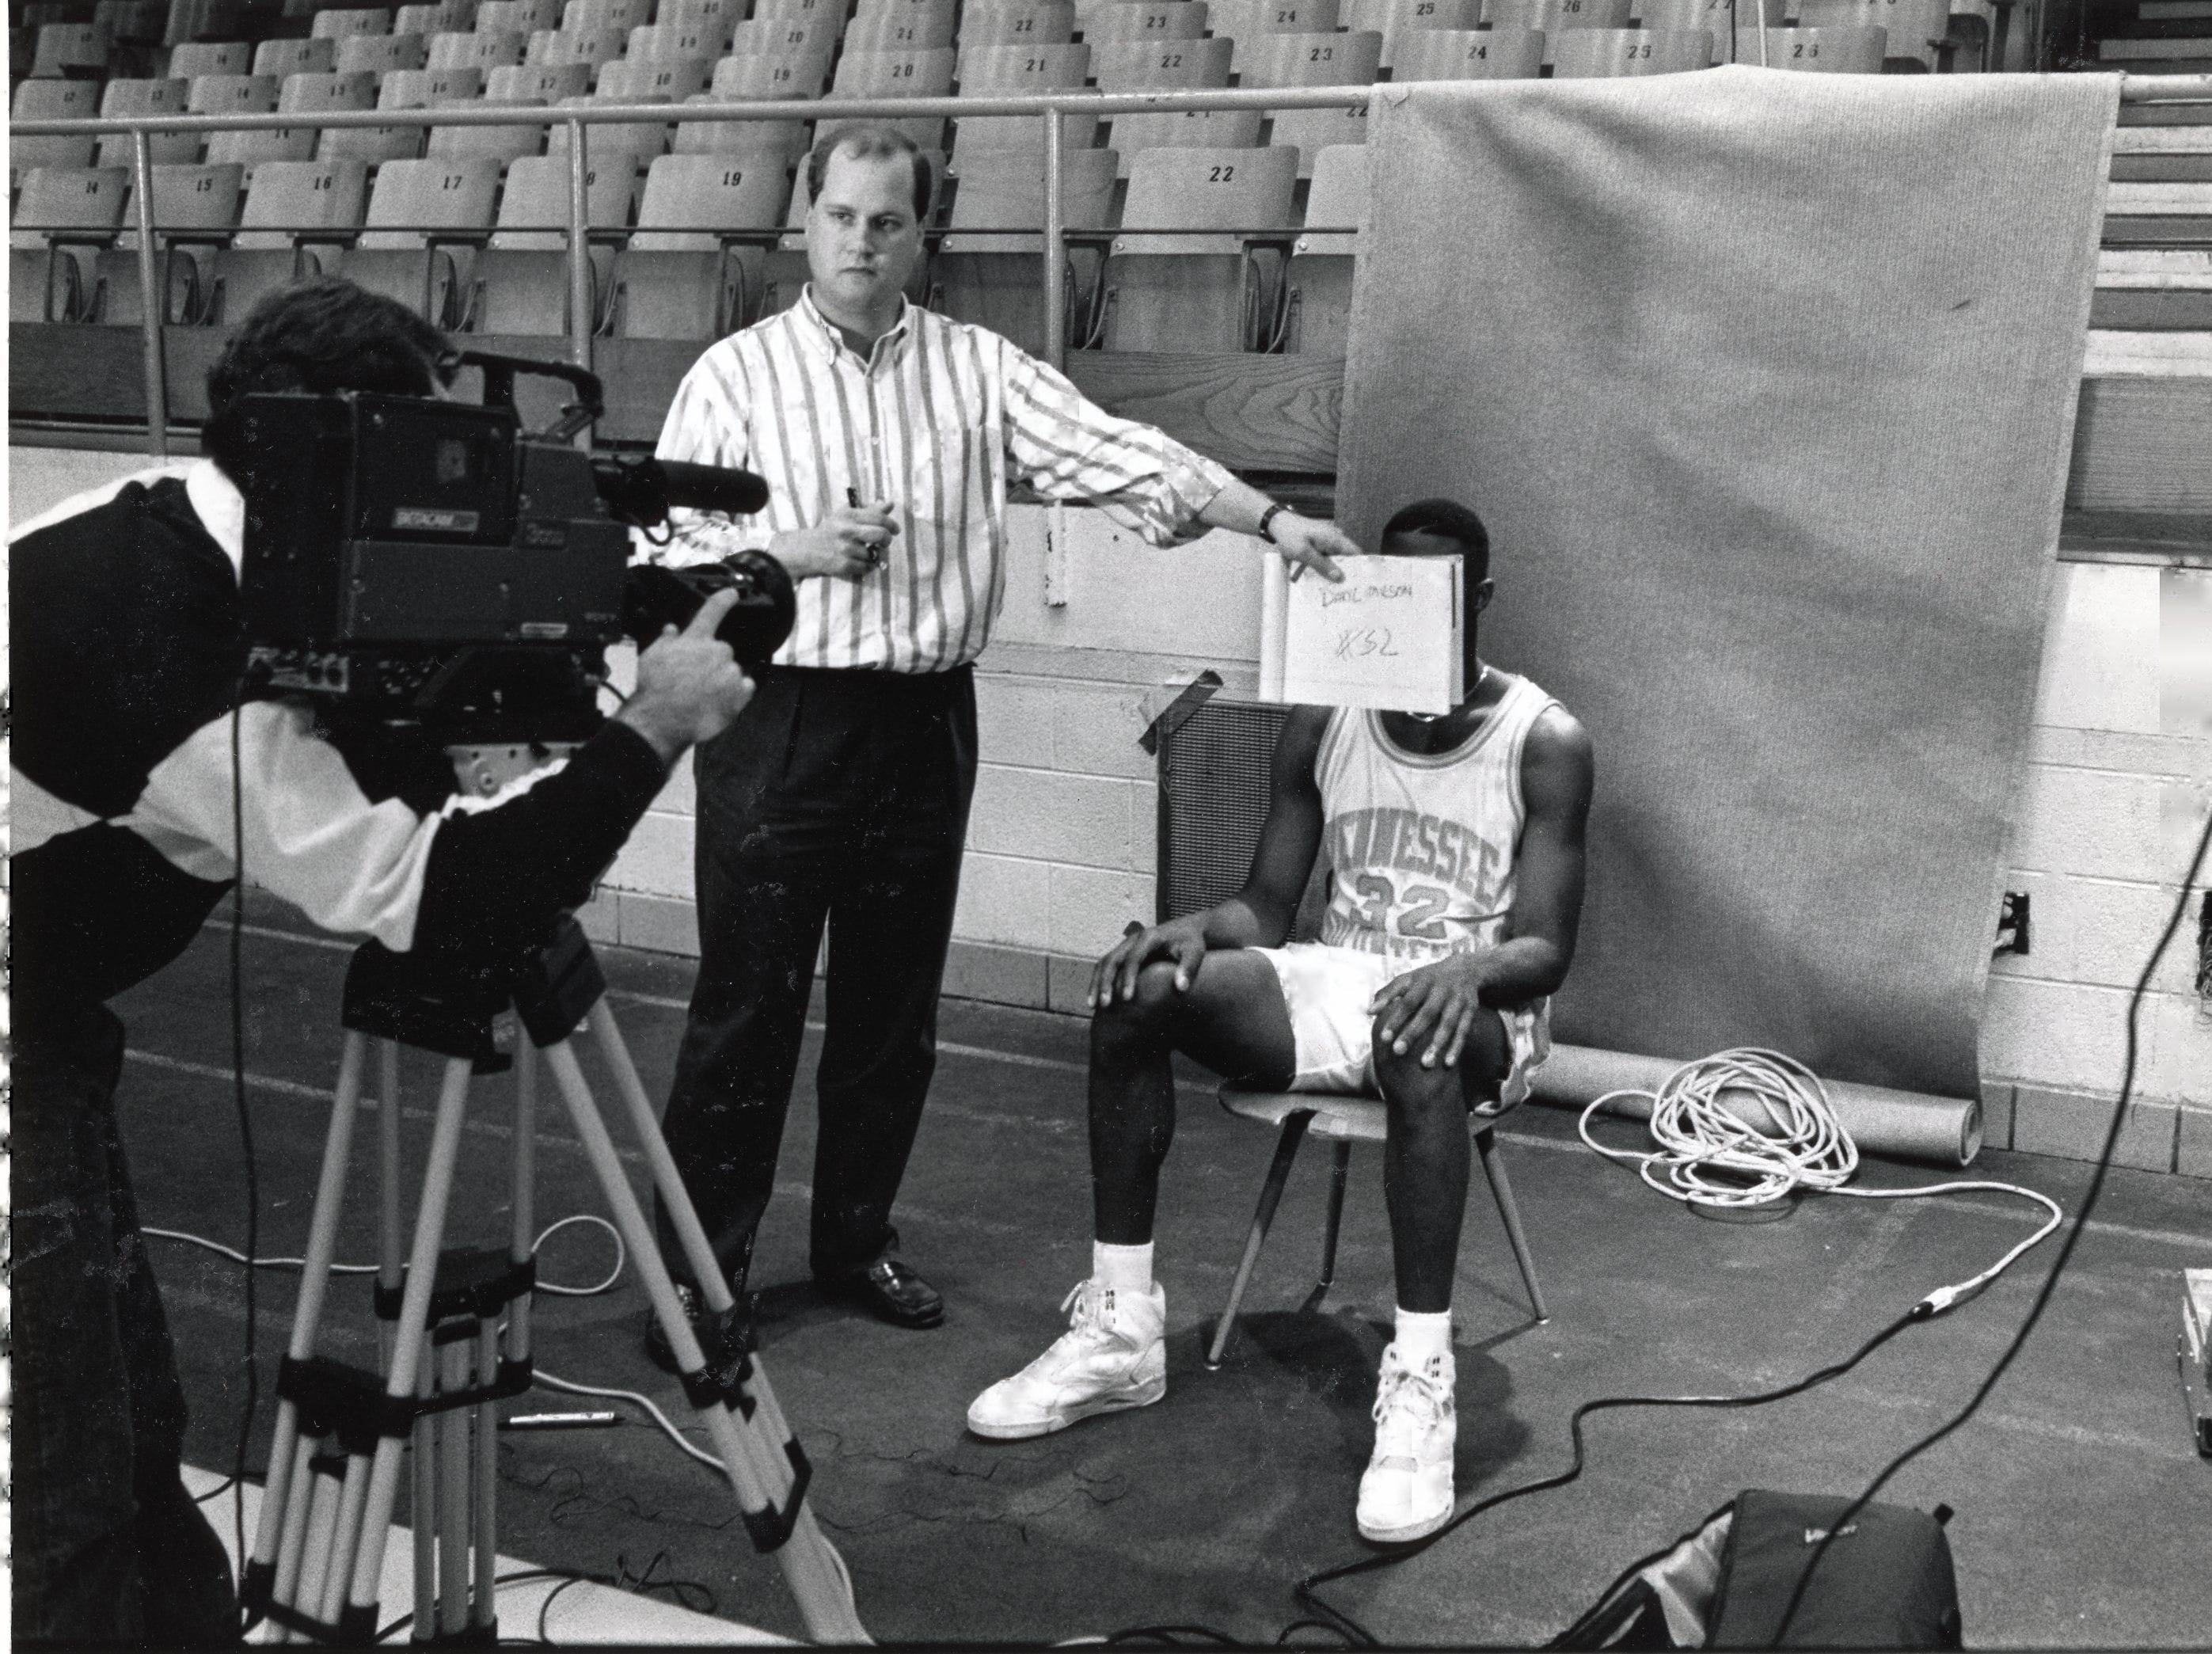 UT video services were on hand at the media day at Stokely to tape headshots of the Tennessee players for ESPN and others who may need video headshots of players in October 1990. Mike Moore is holding an identifying name and number in front of player Daryl Wilson for the taping.